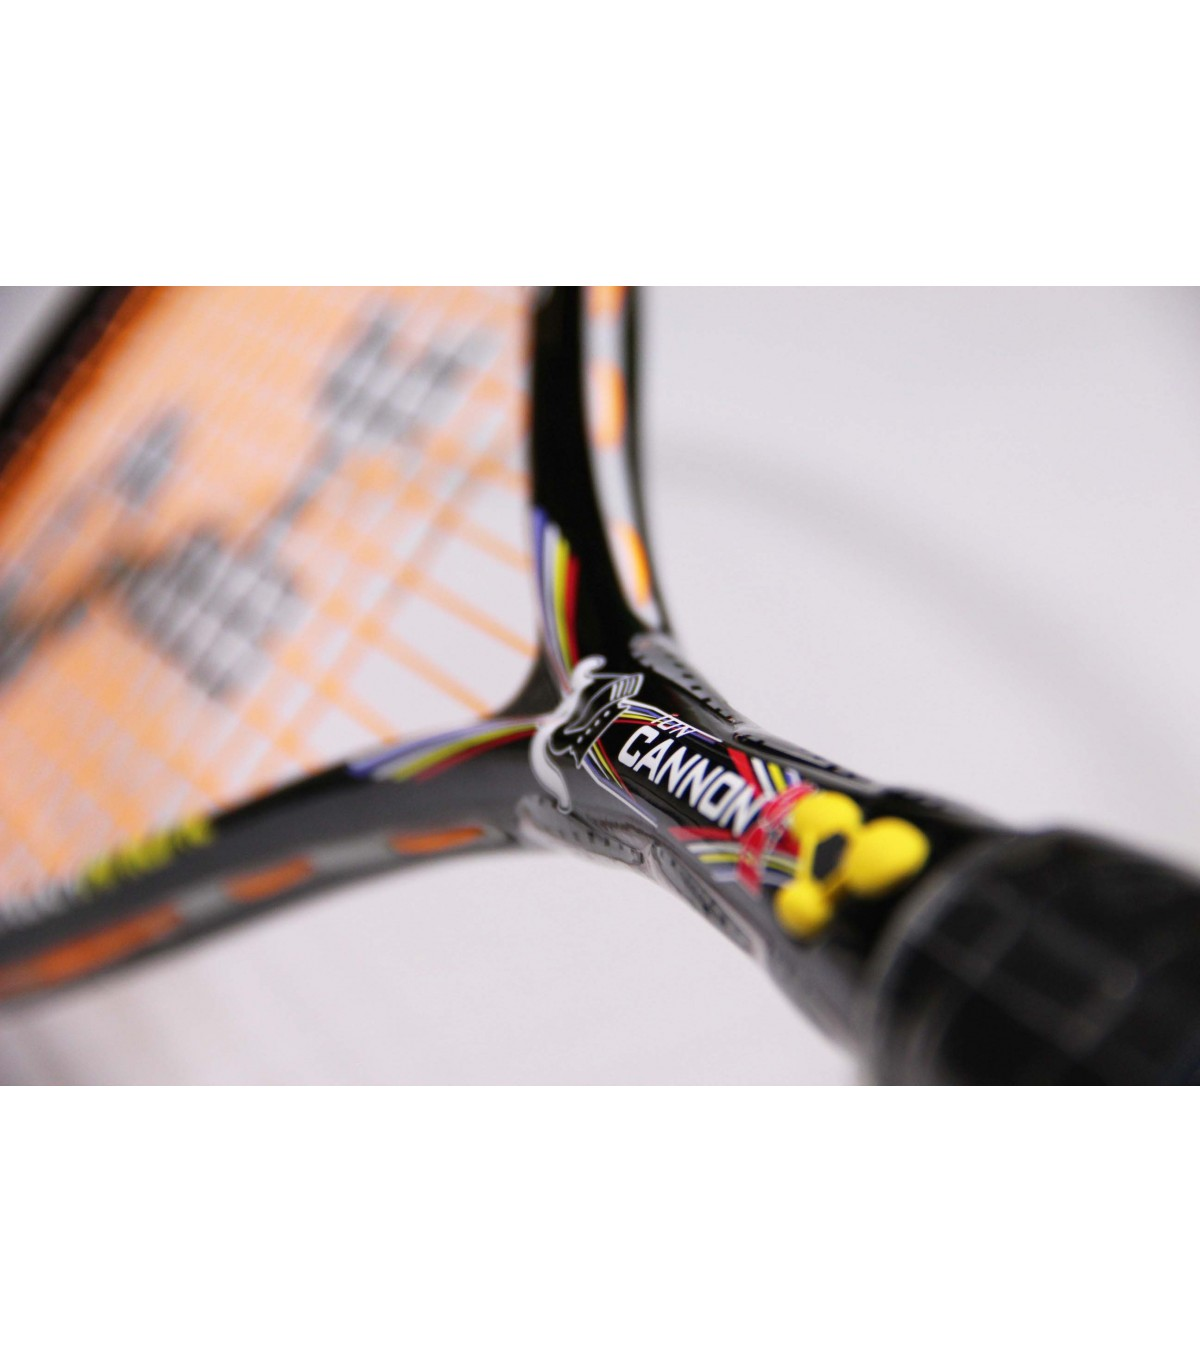 Black Knight Ion Cannon PS M.Castagnet Squash racket | My-Squash.com